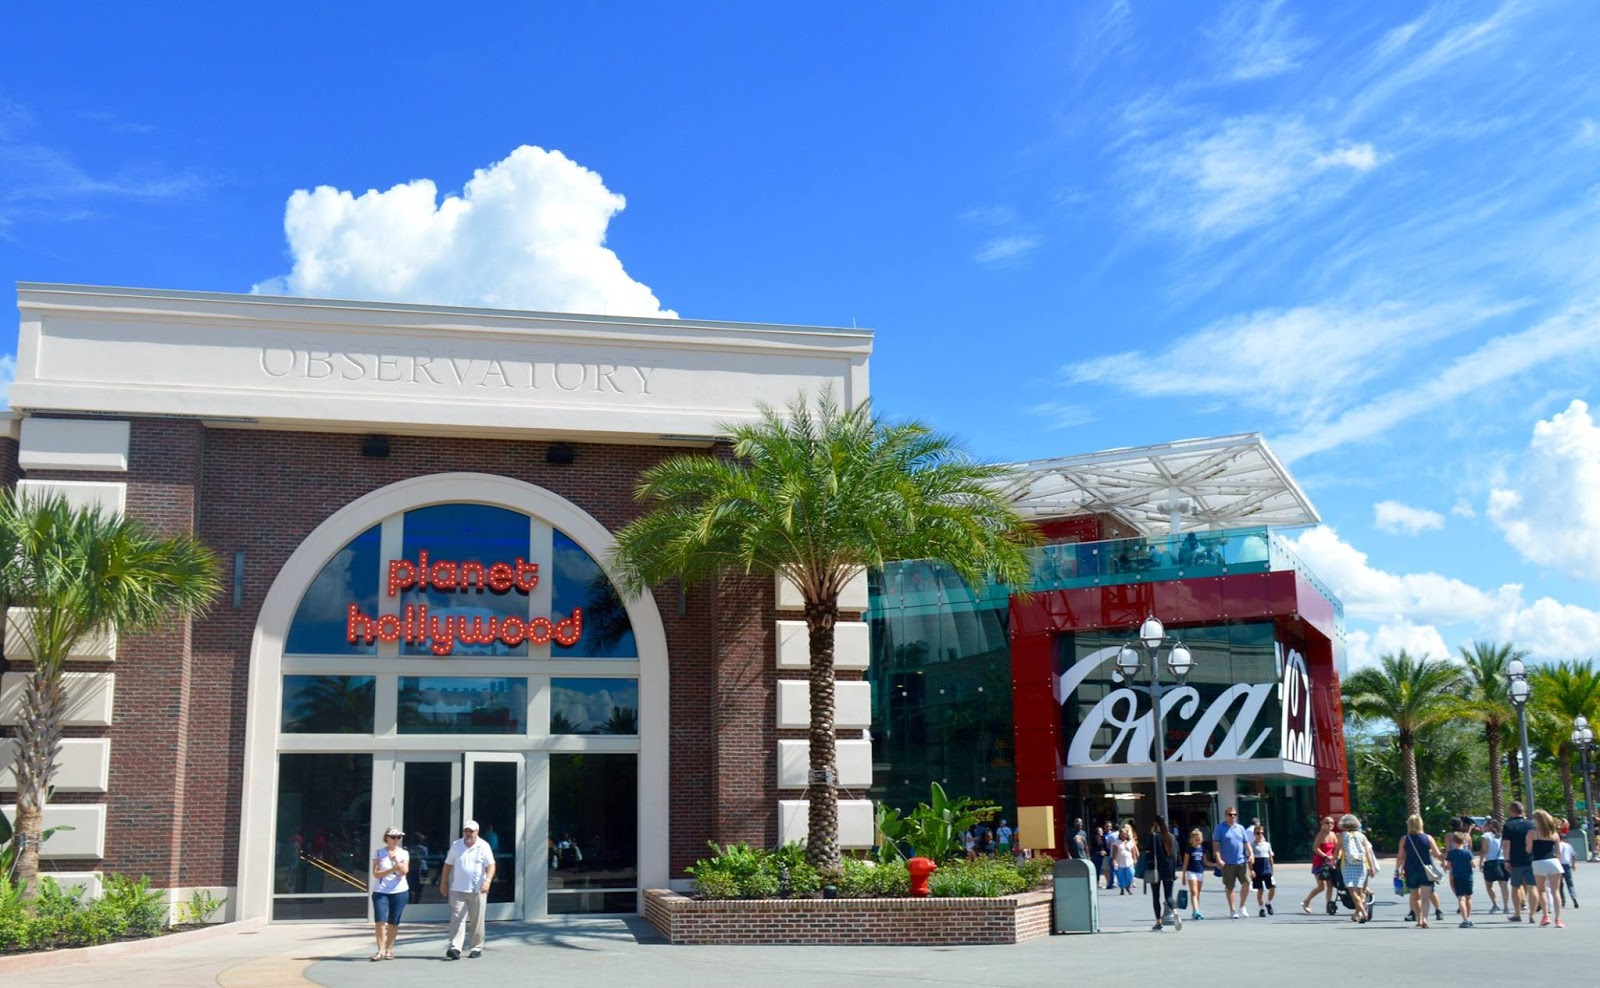 11 Things to do with Kids at Disney Springs Orlando, Florida  - planet hollywood building